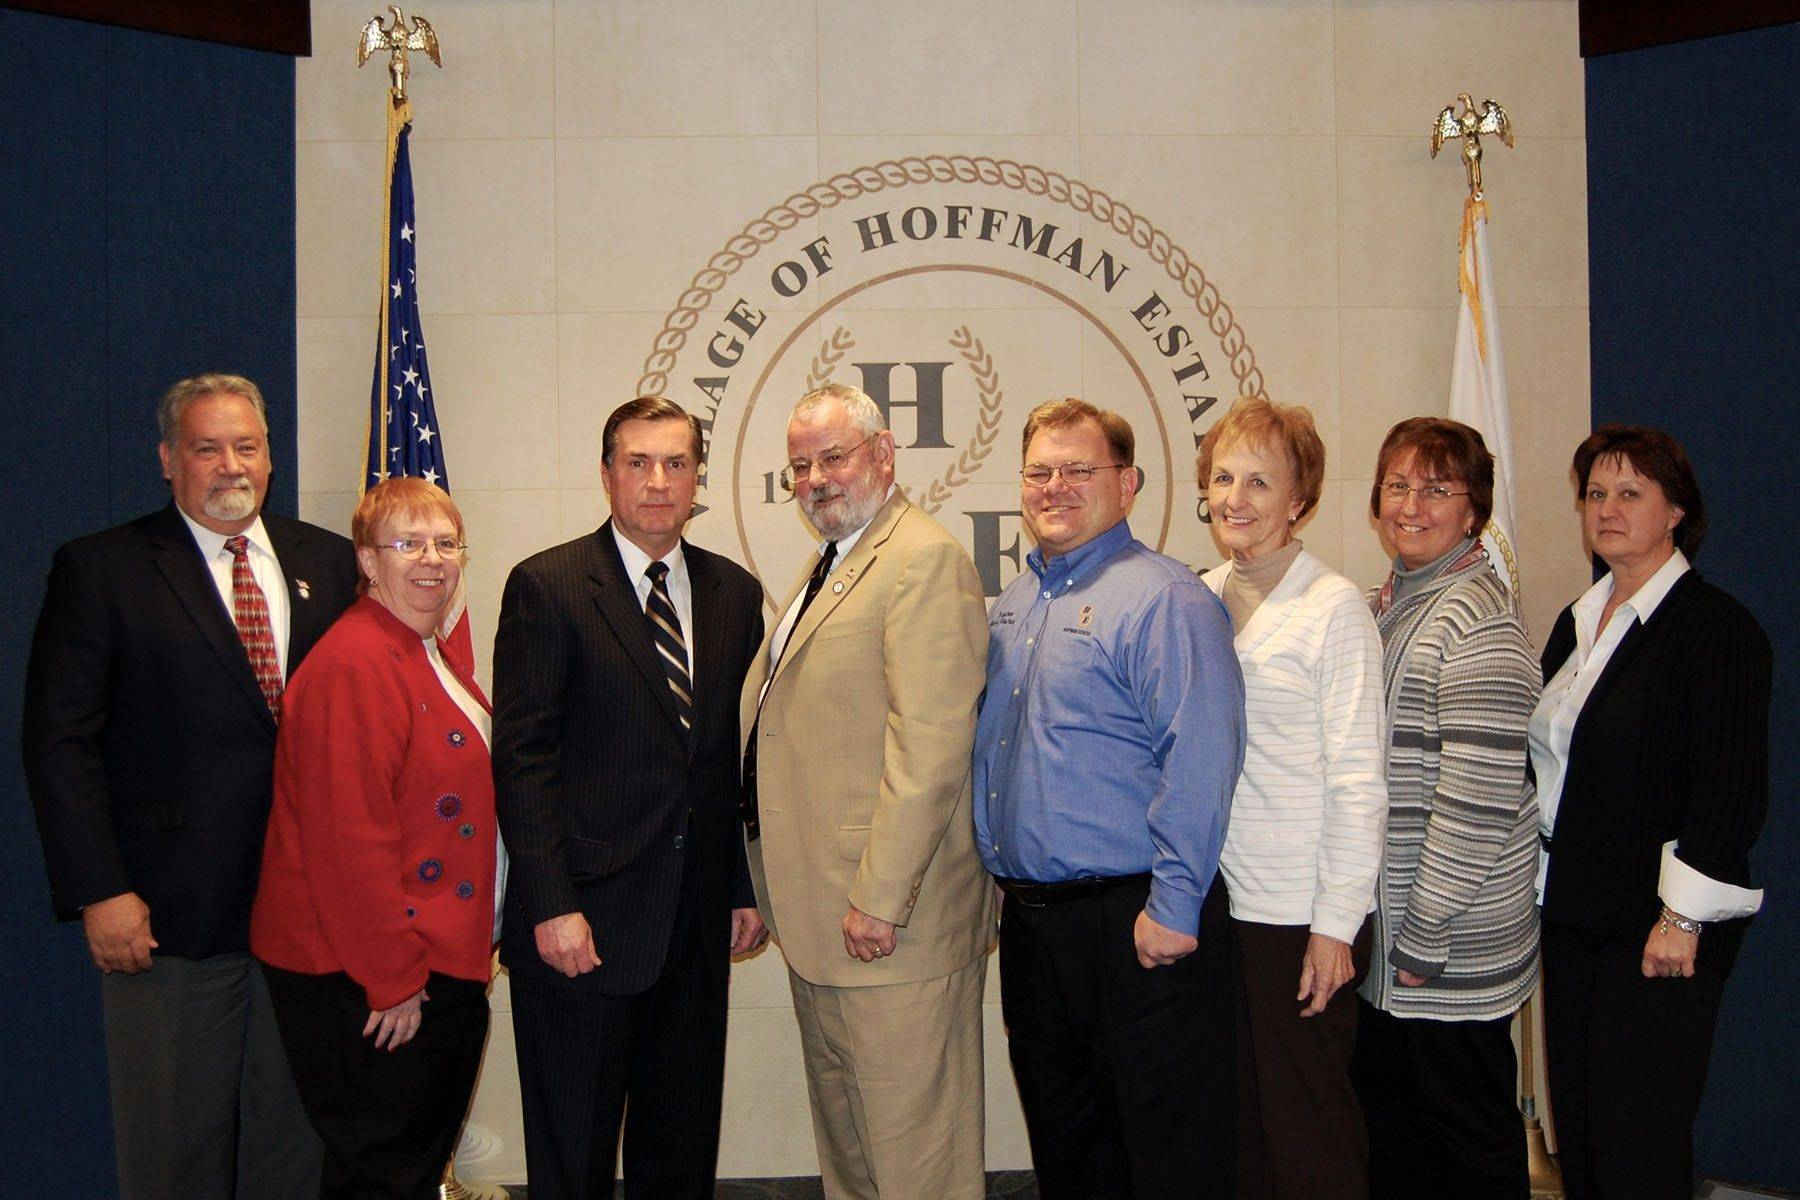 The Hoffman Estates village board in a December 2010 photo, from left: Trustee Raymond Kincaid; Trustee Karen Mills; Trustee Gary Stanton; Mayor William McLeod; Trustee Gary Pilafas; Trustee Jacquelyn Green; Trustee Anna Newell and Clerk Bev Romanoff.